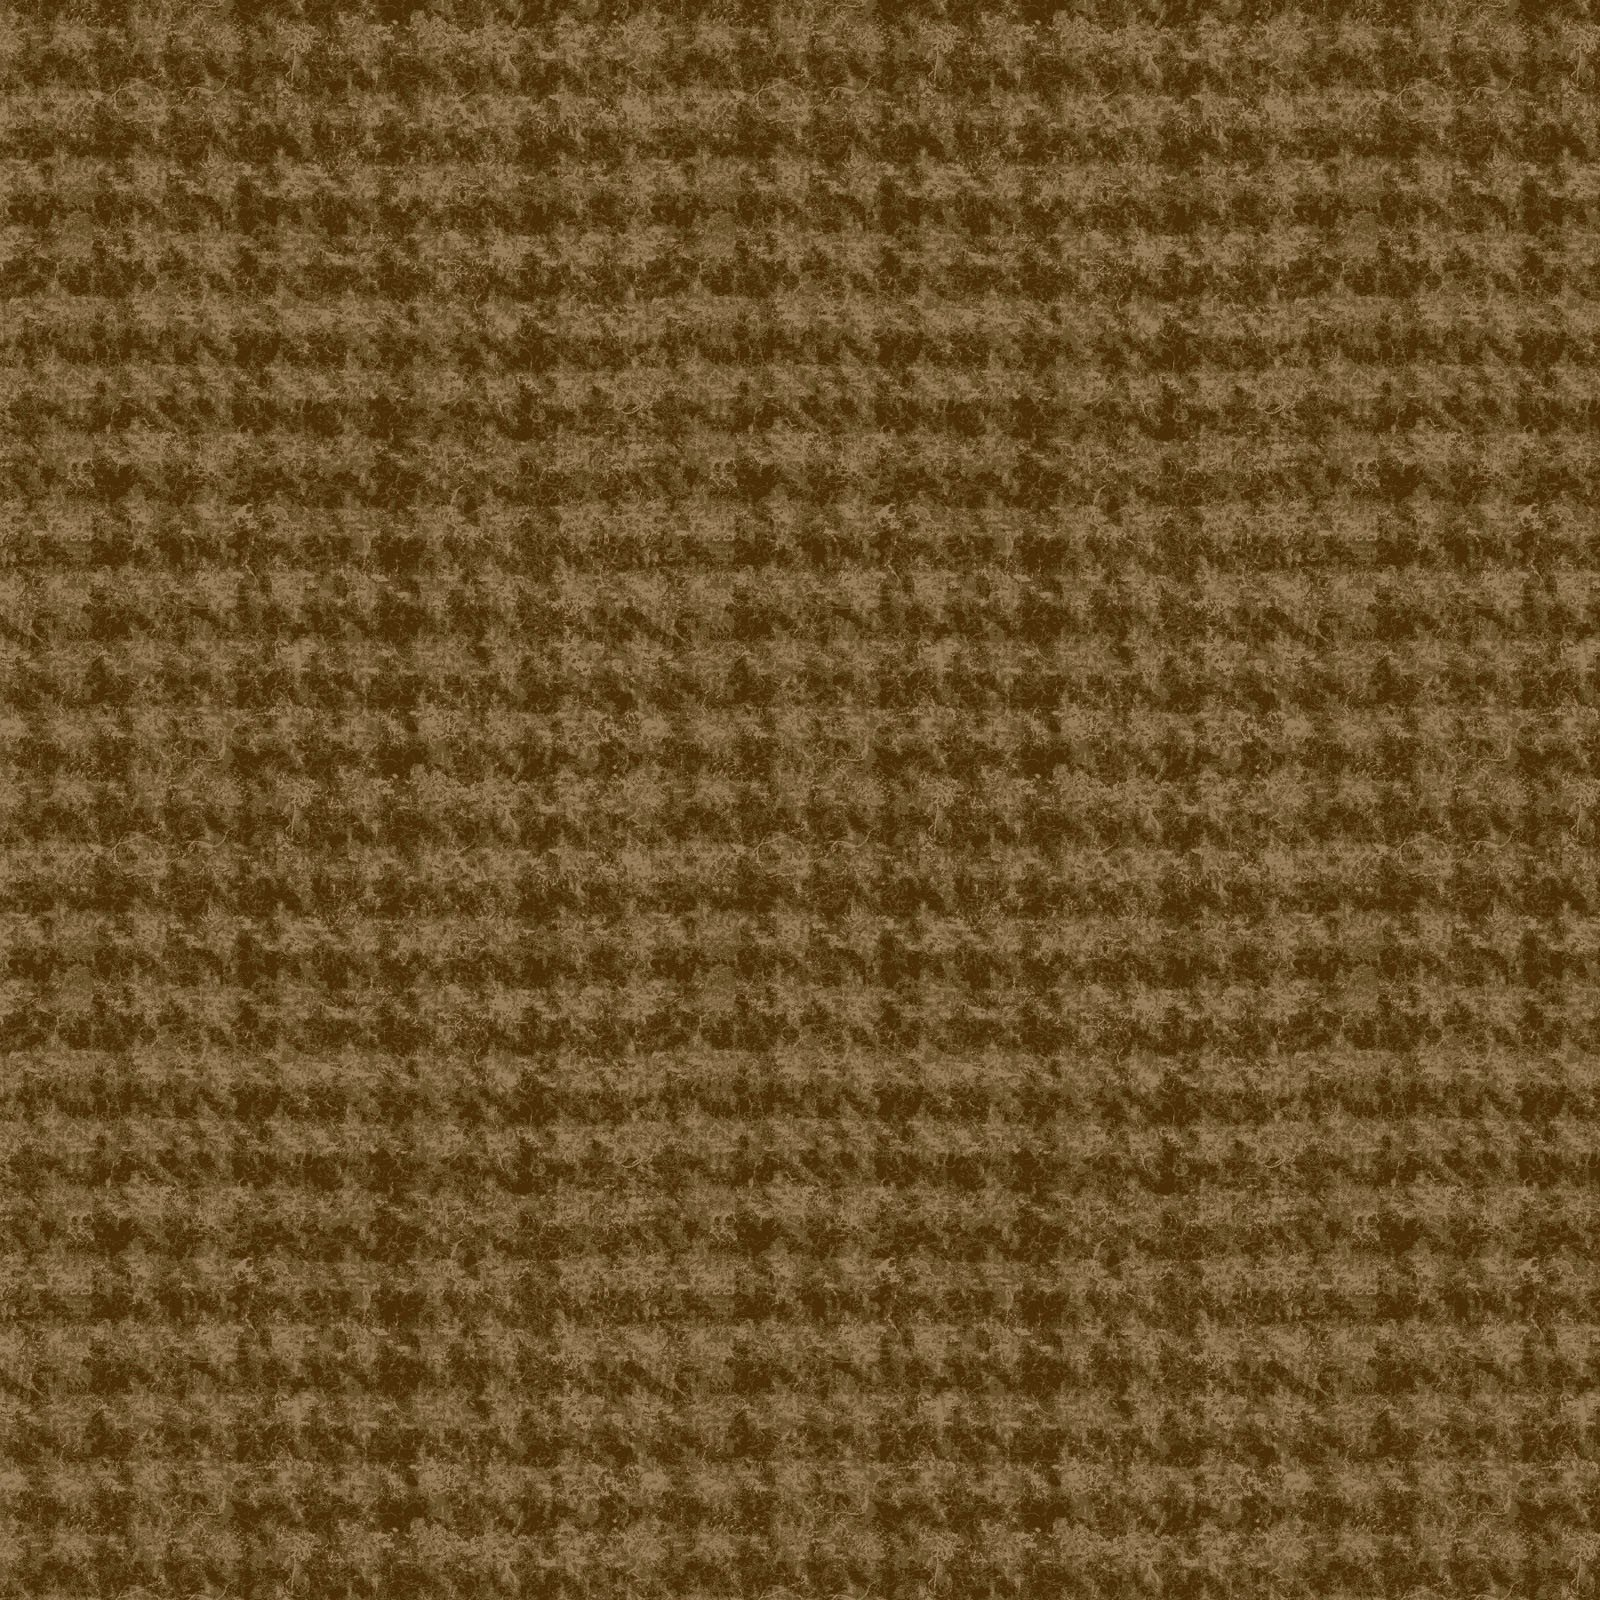 Woolies Flannel Houndstooth Medium Brown (MASF18503-A2)